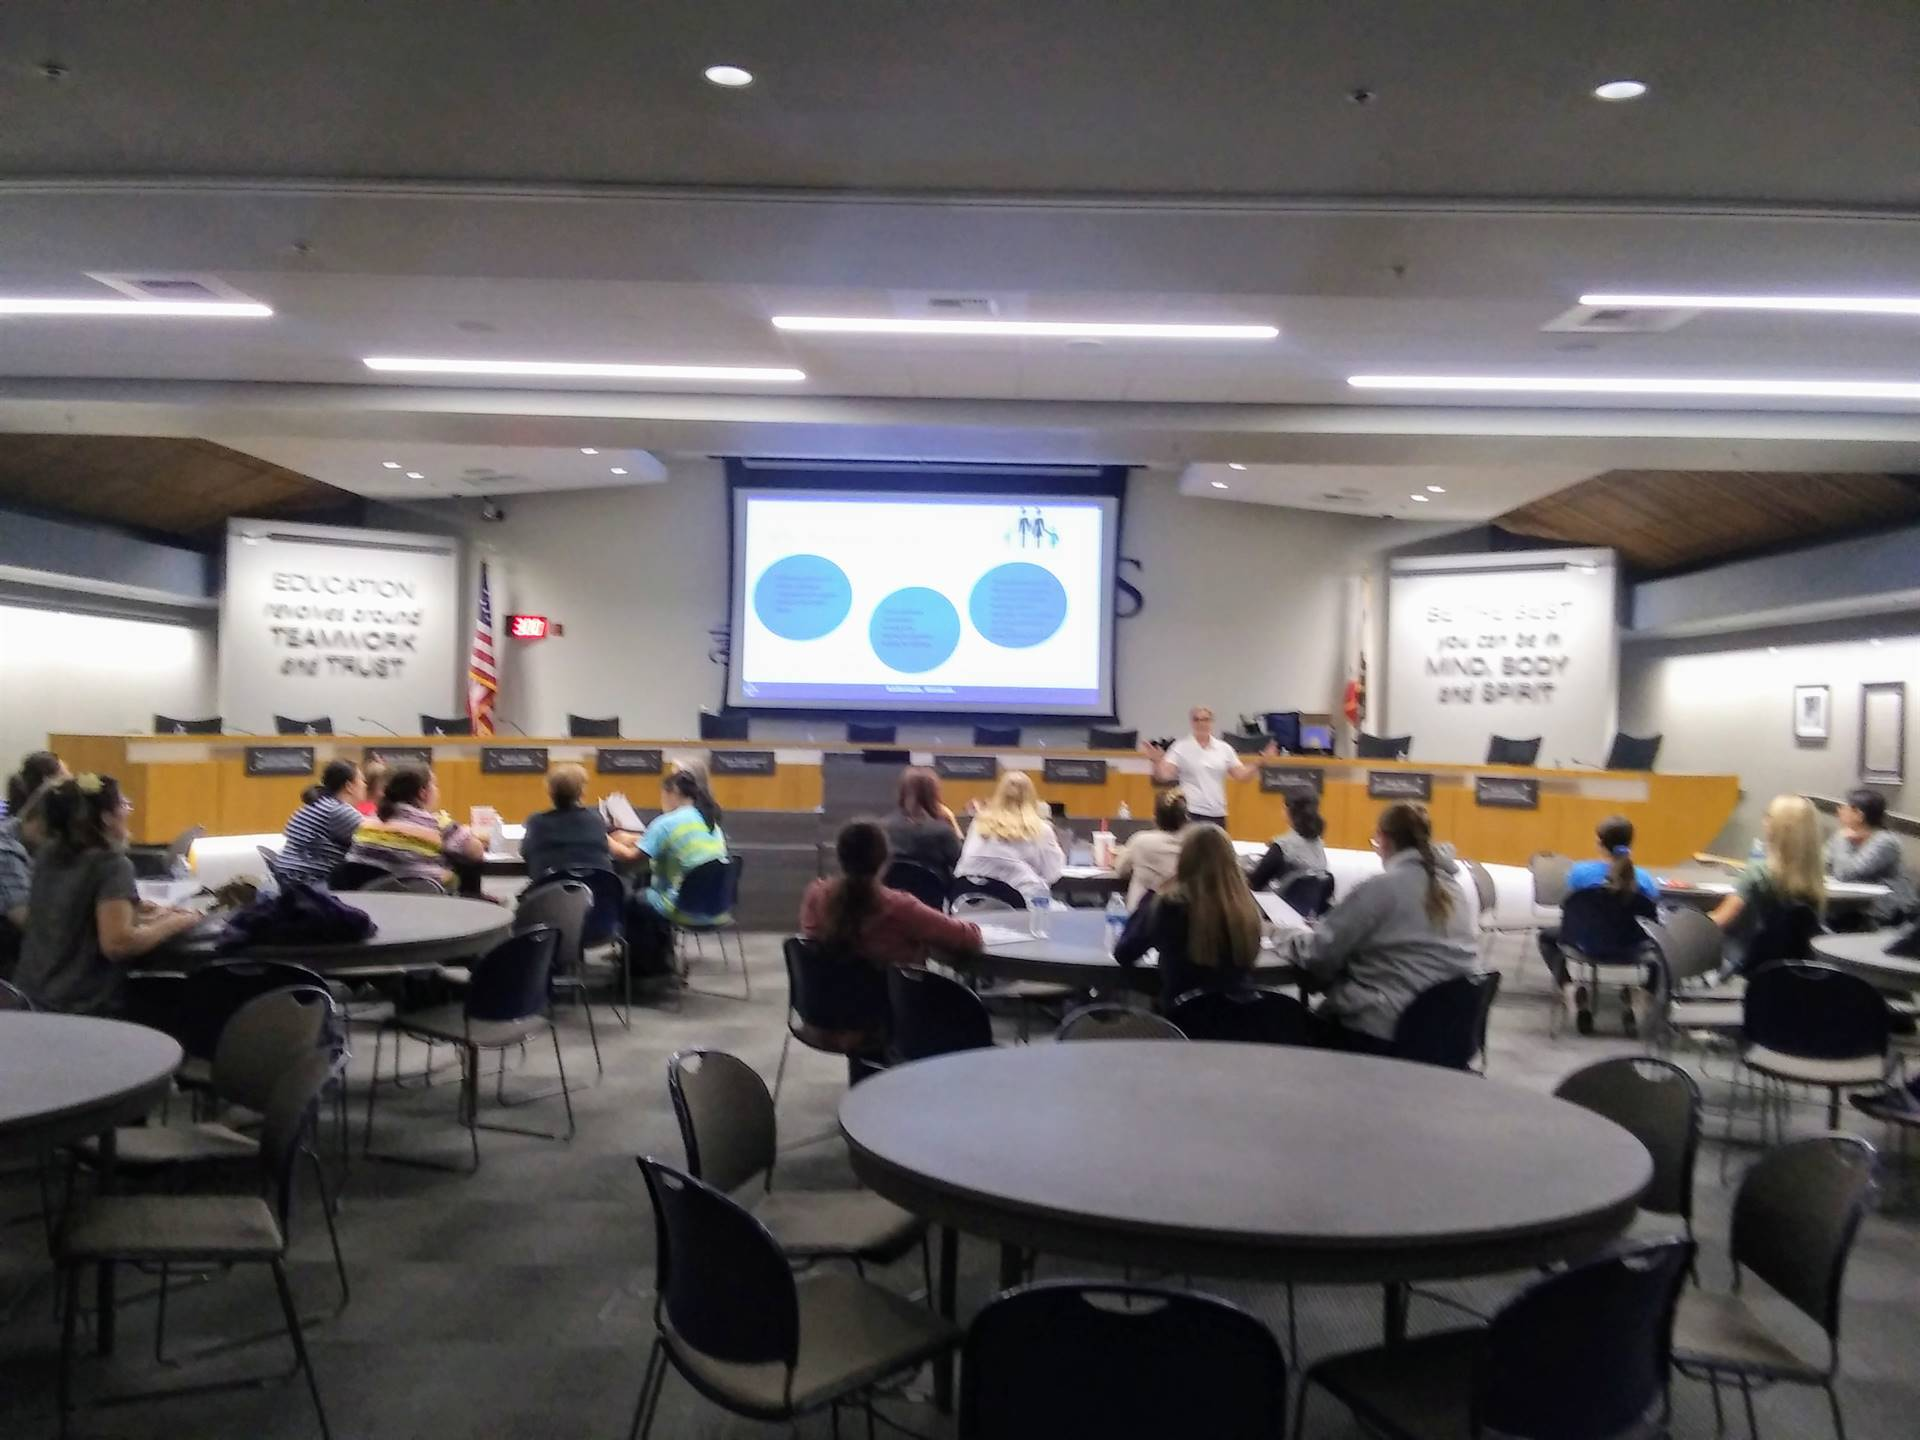 FRC workshop at CUSD boardroom gray round tables, projection screen and many people